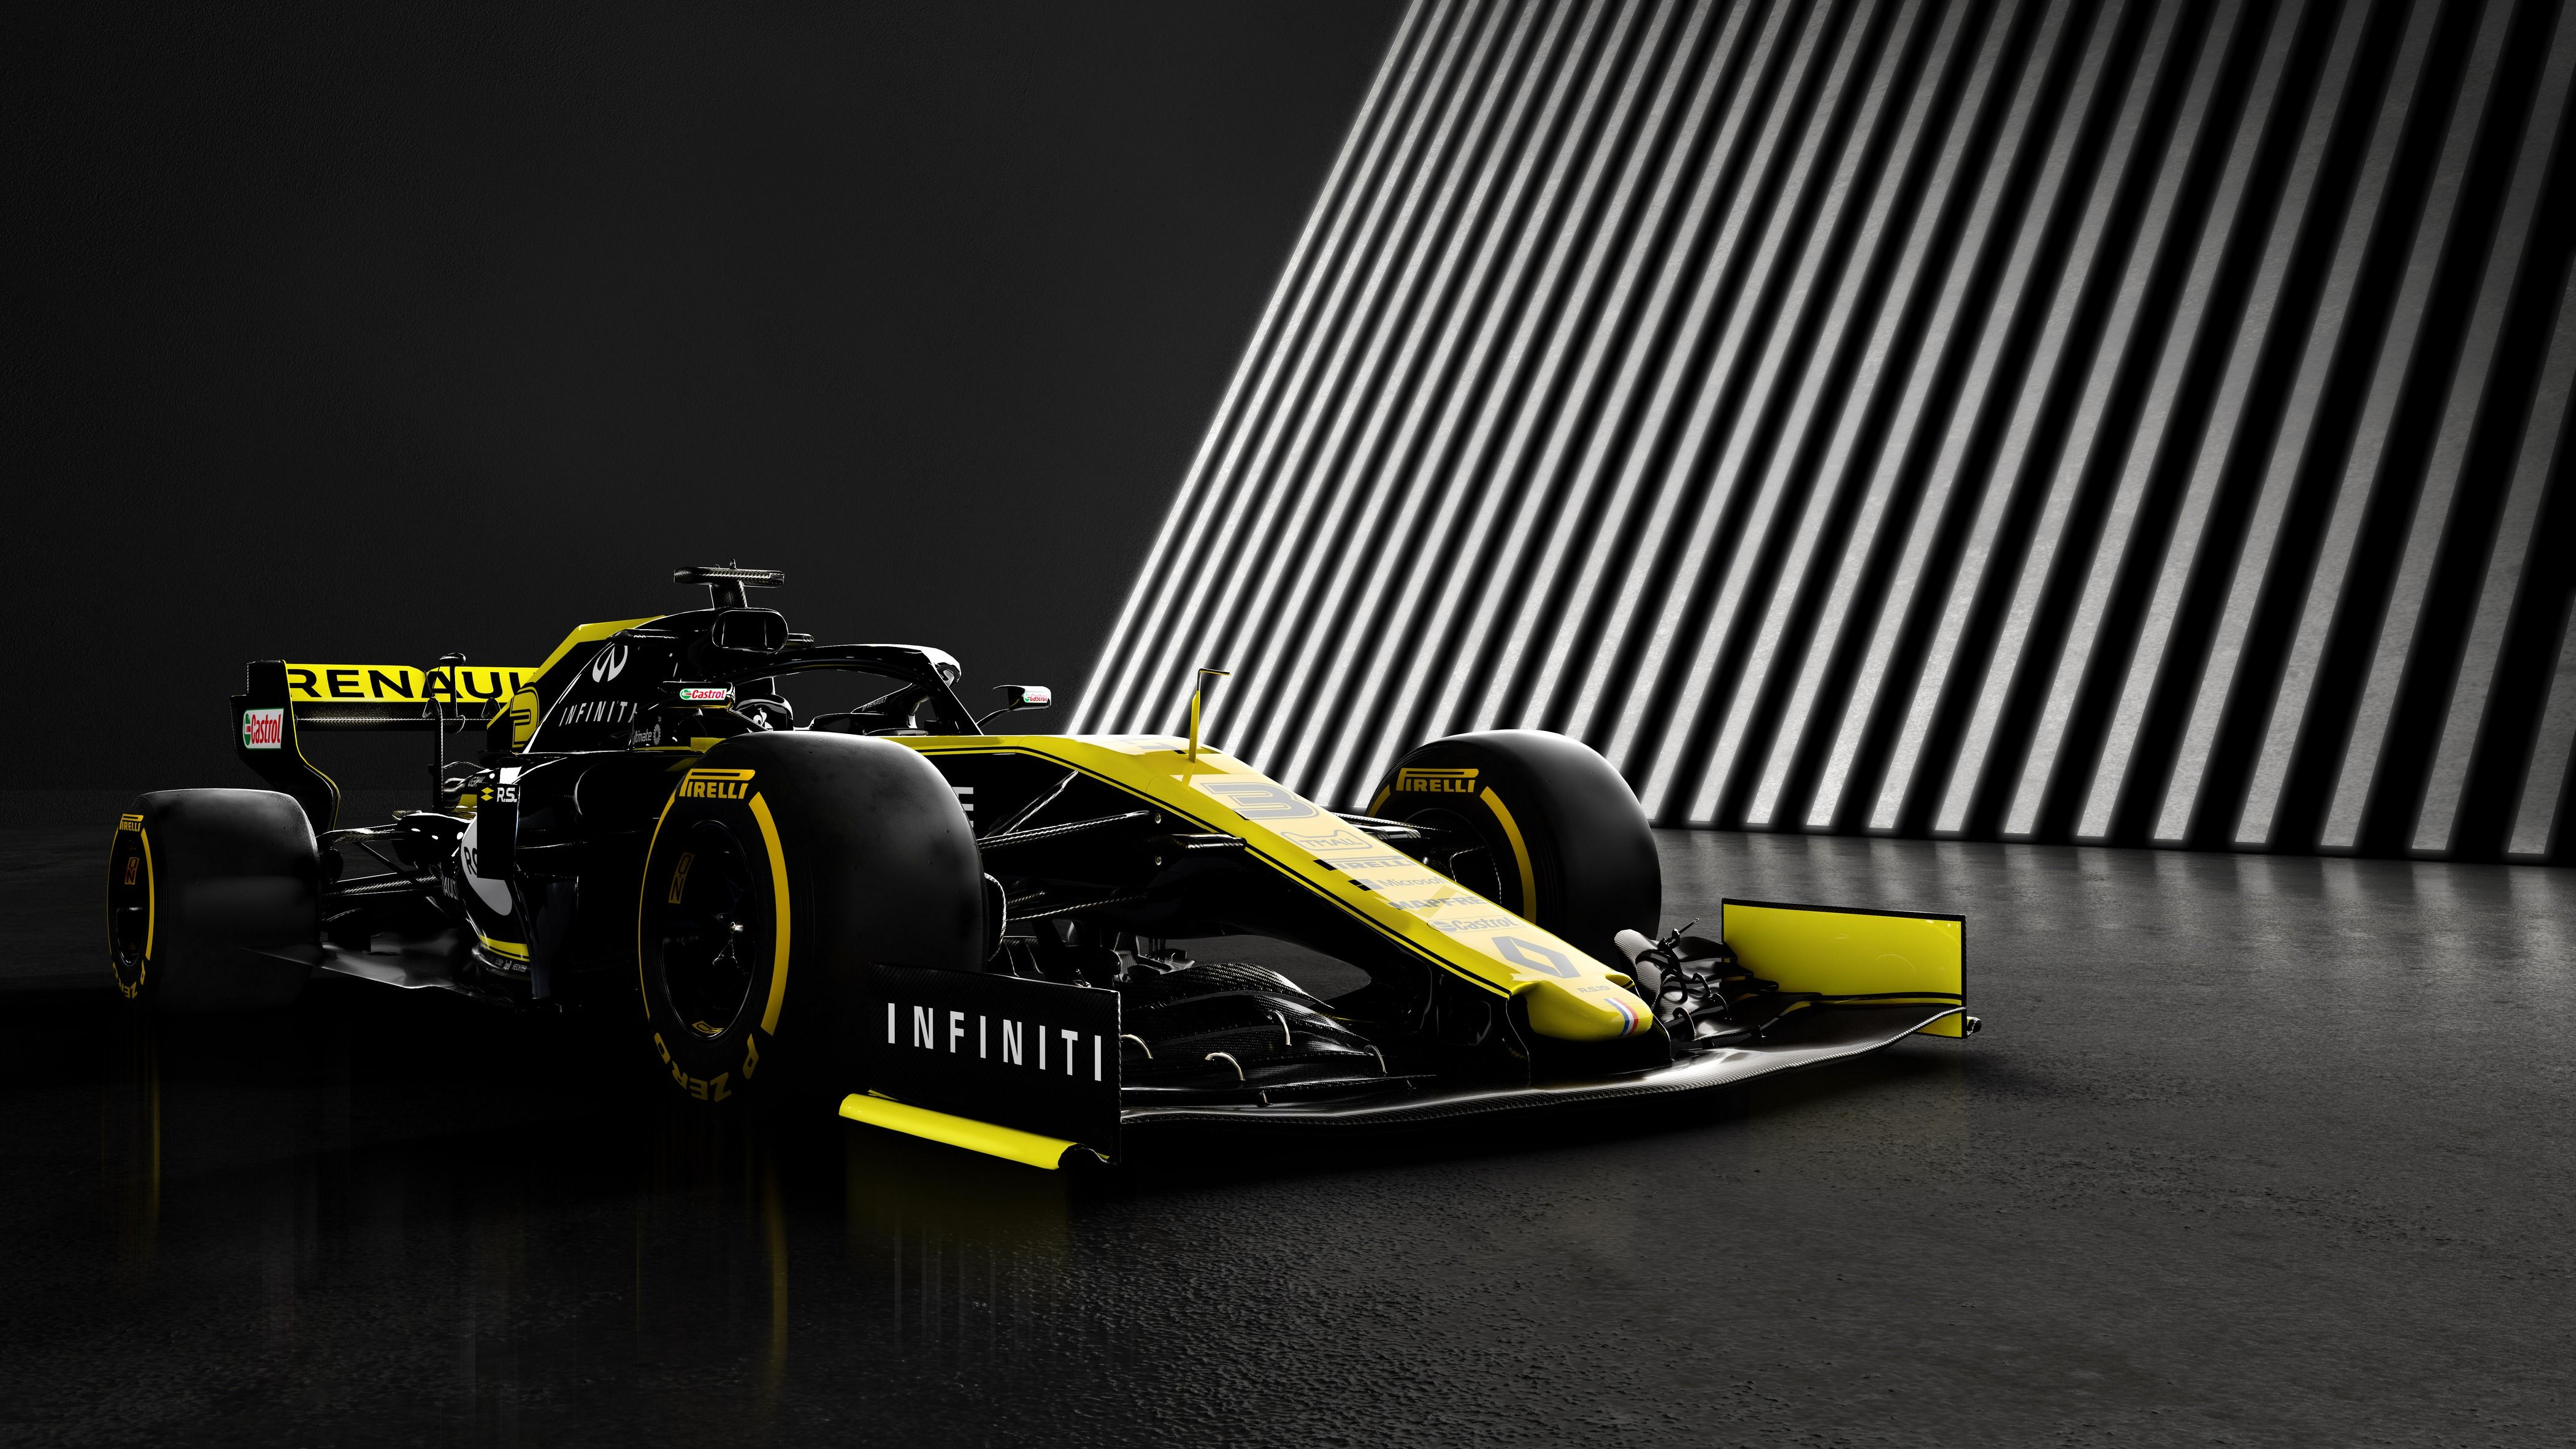 Renault F1 Wallpapers Top Free Renault F1 Backgrounds Wallpaperaccess